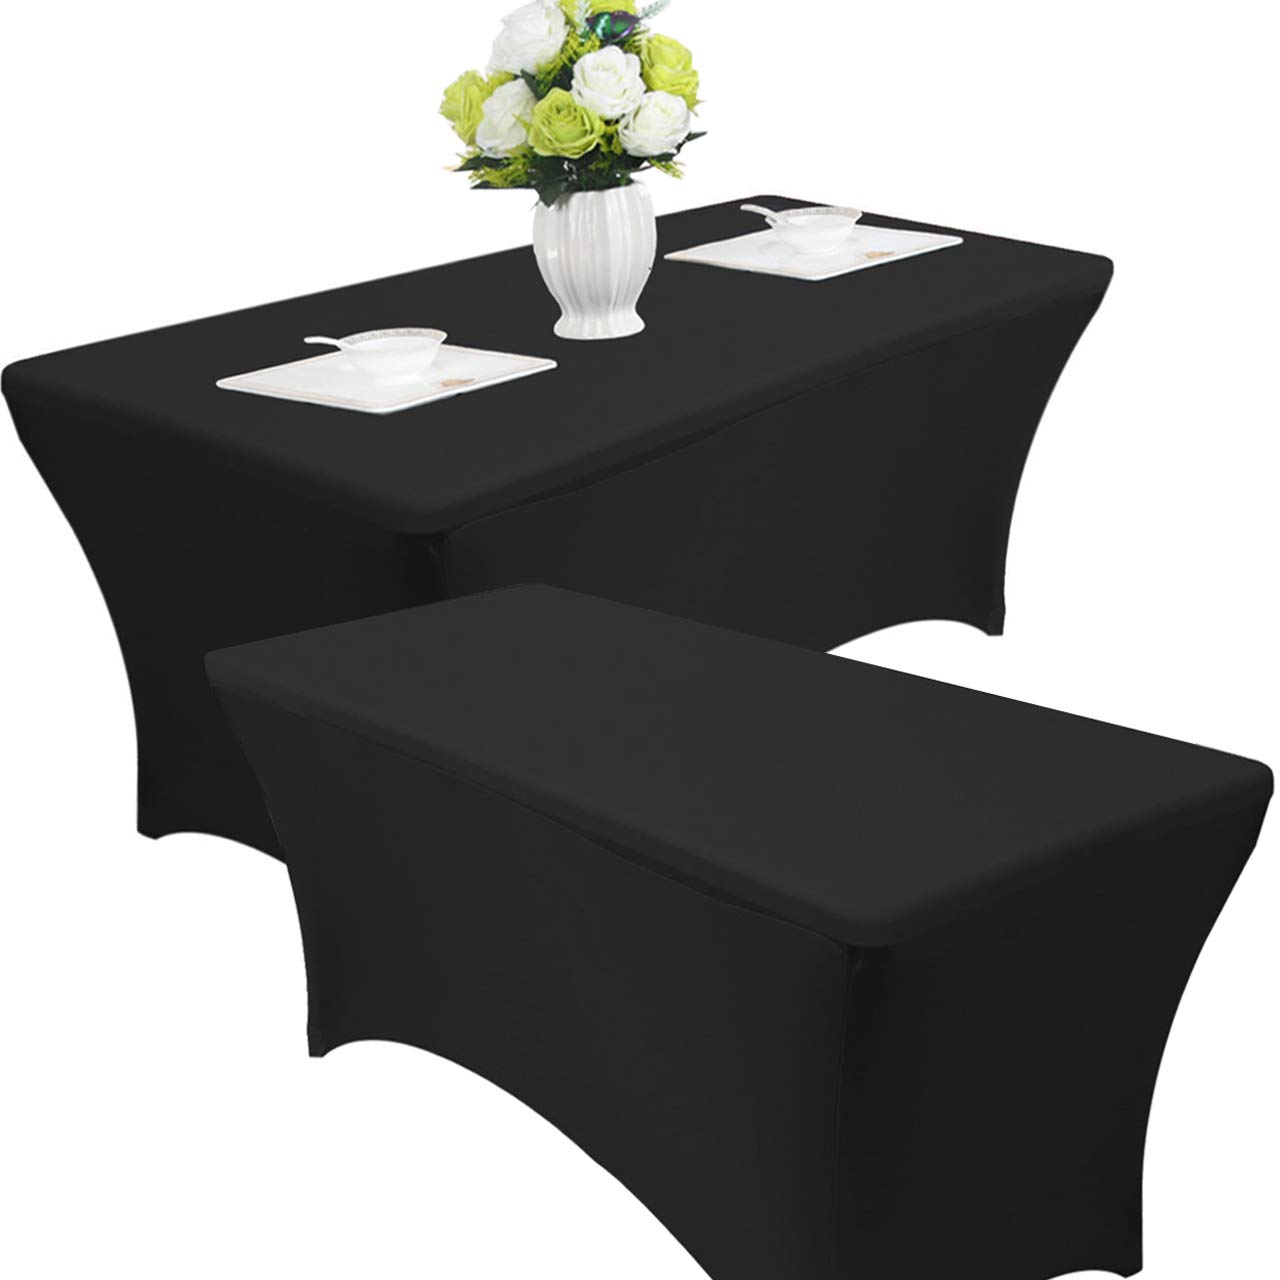 Reliancer 2 Pack 48FT Rectangular Spandex Table Cover Four-Way Tight Fitted Stretch Tablecloth Table Cloth for Outdoor Party DJ Tradeshows Banquet Vendors Weddings Celebrations (6FT, Black) by Reliancer (Image #1)